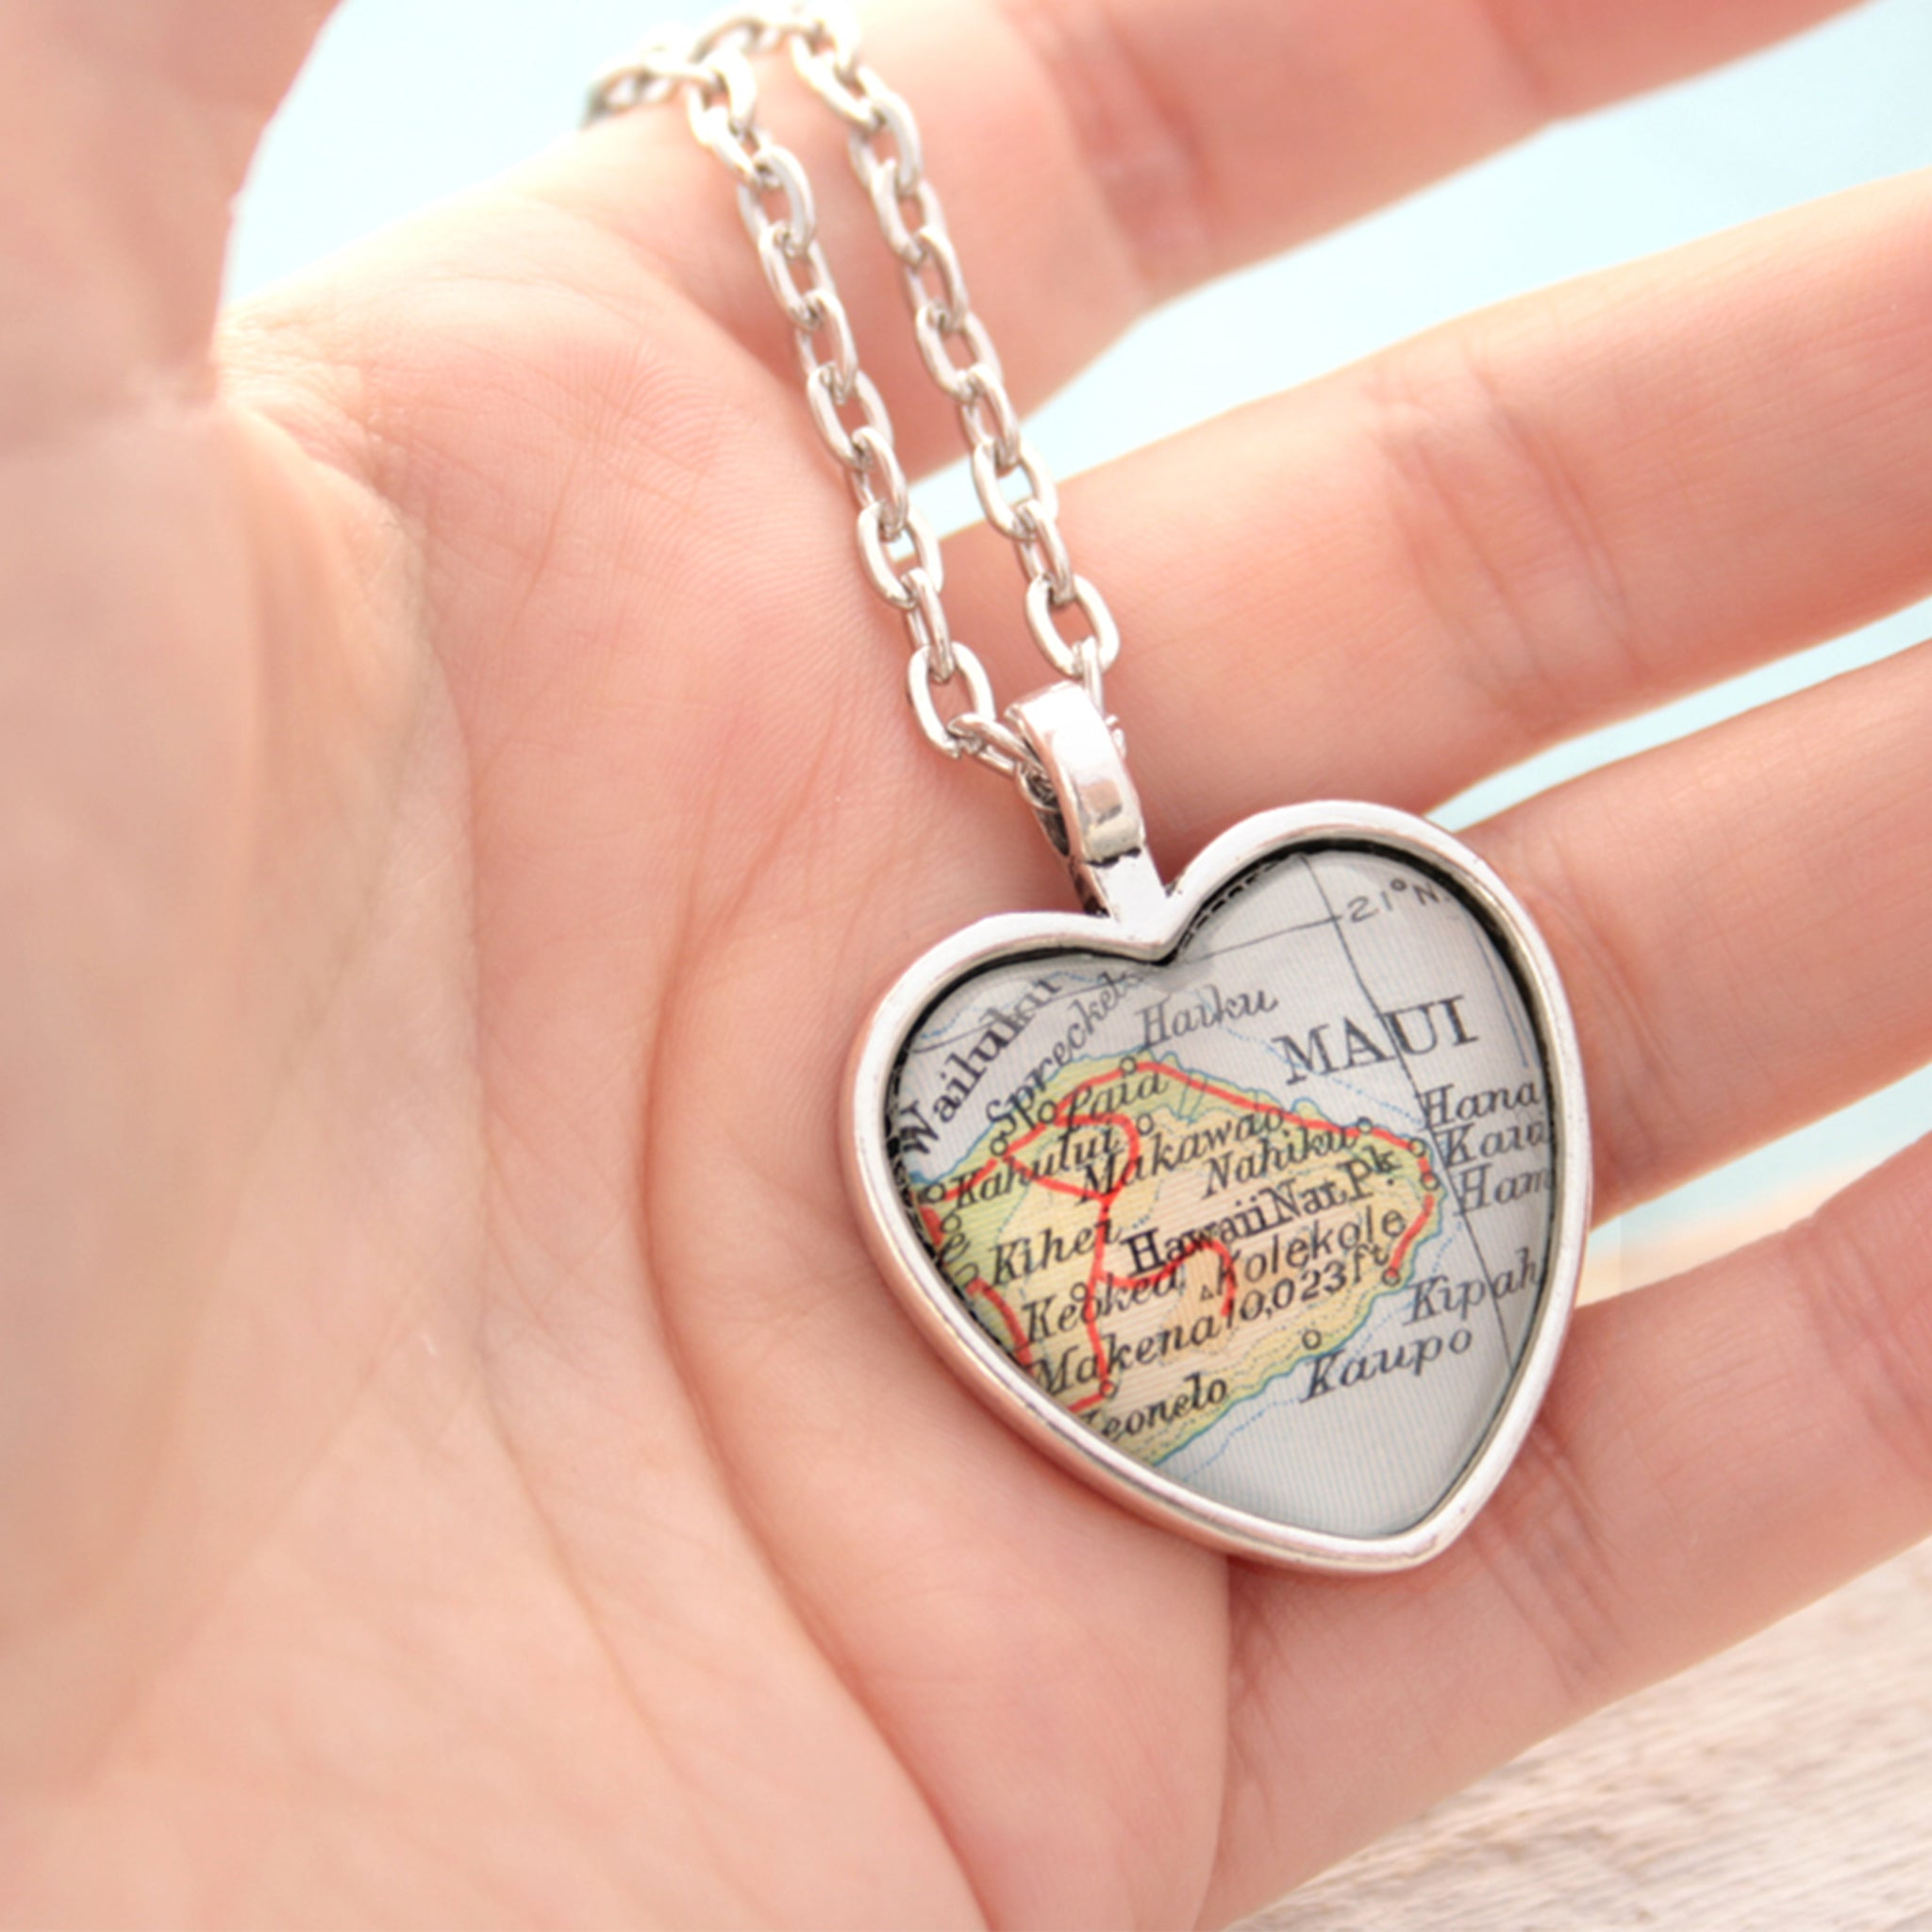 Hold in hand heart shaped pendant necklace in silver tone featuring map of Maui